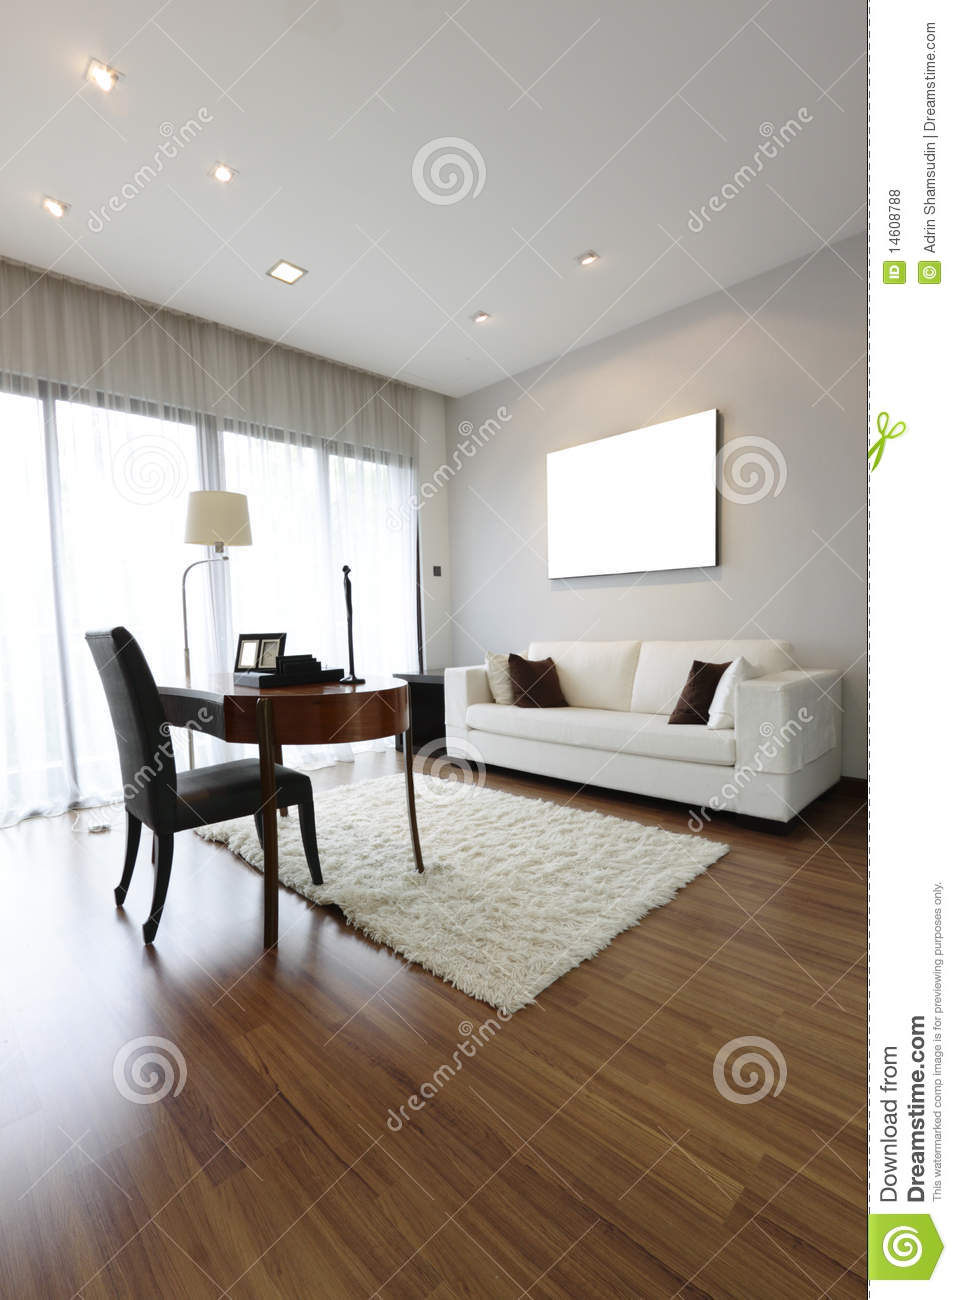 Modern Study Room Stock Photo Image Of Curtains Wooden